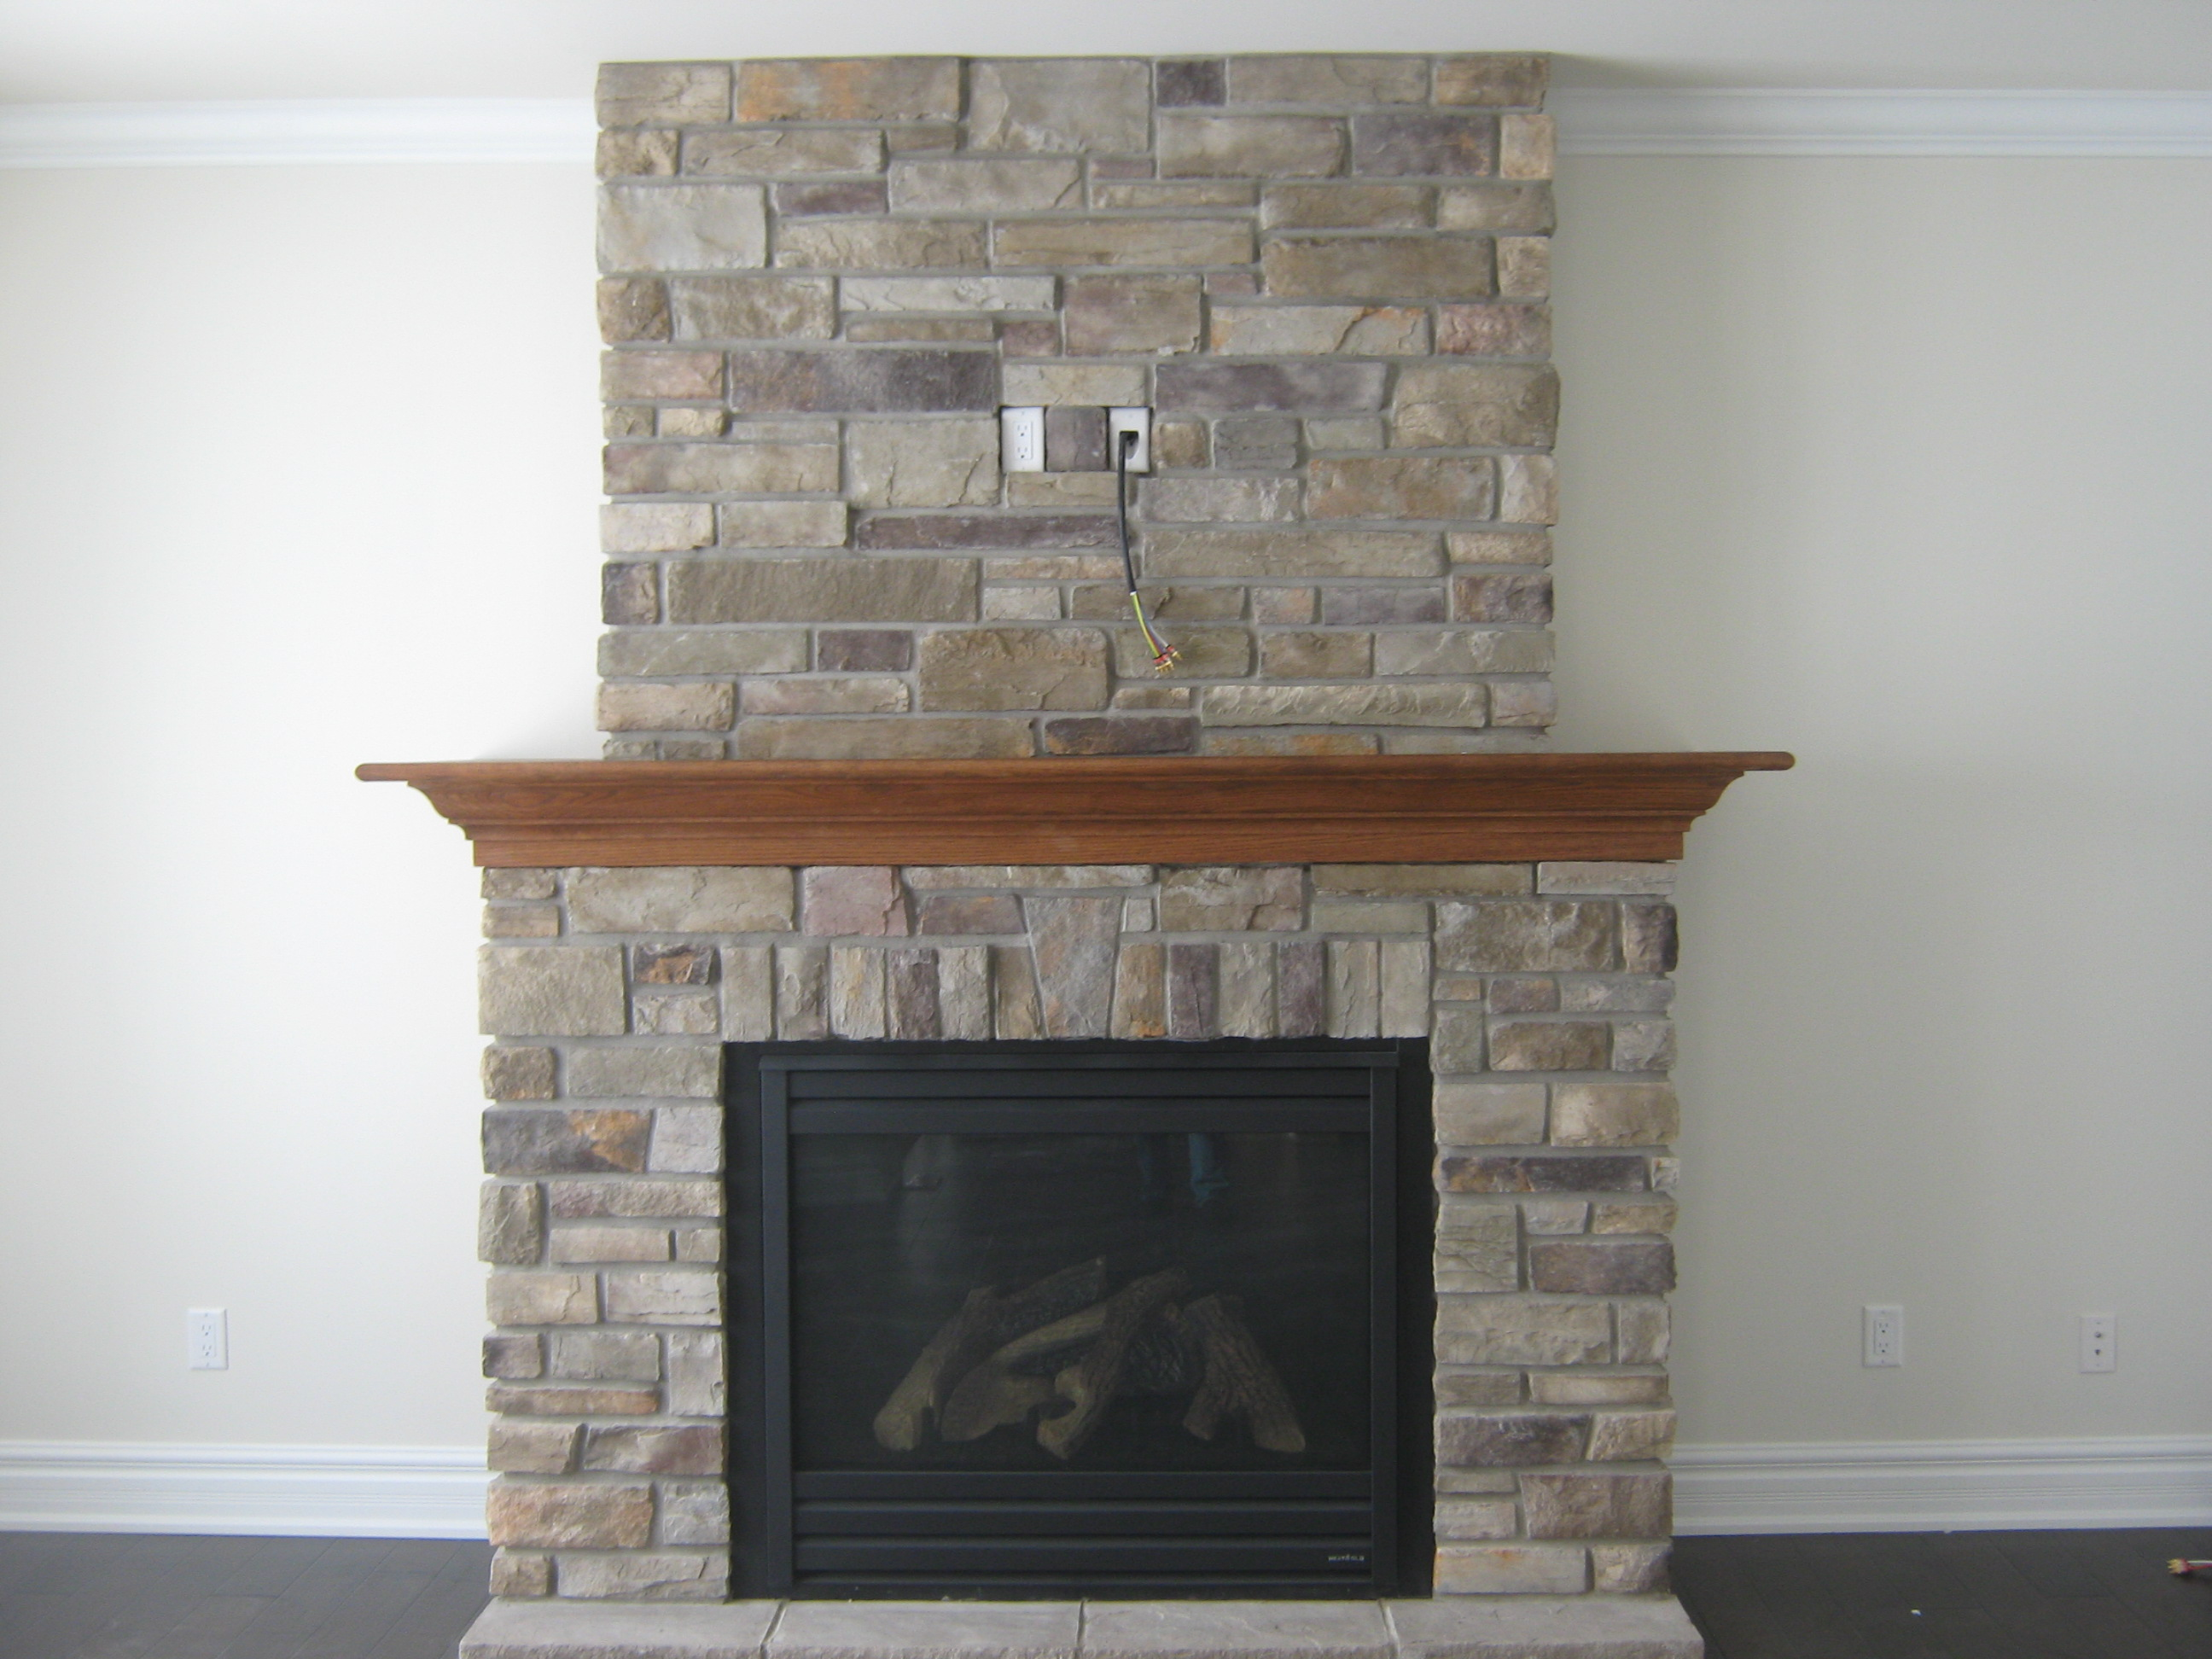 Architecture Fireplace Stone veneer panels Wall Decoration Ideas For Modern home ideas